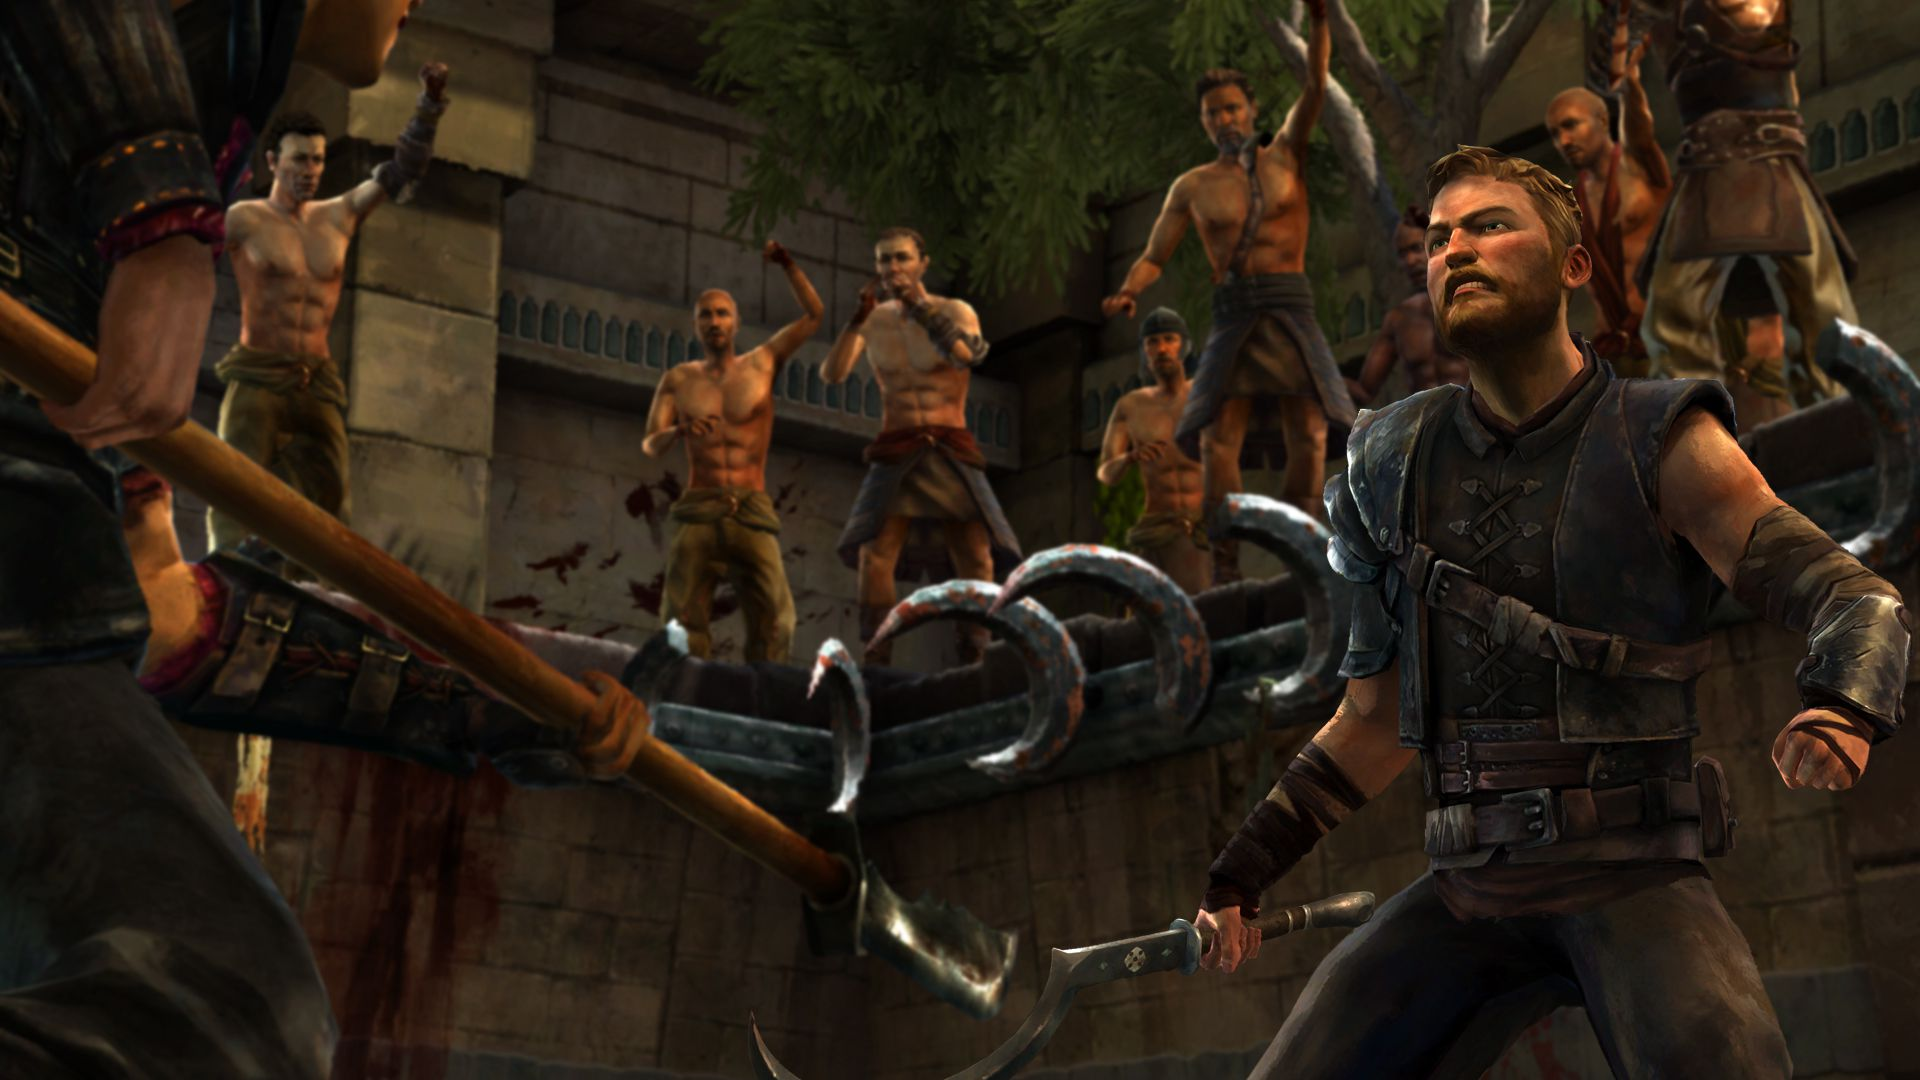 Telltale's Game of Thrones episode 5: 'A Nest of Vipers' screenshots